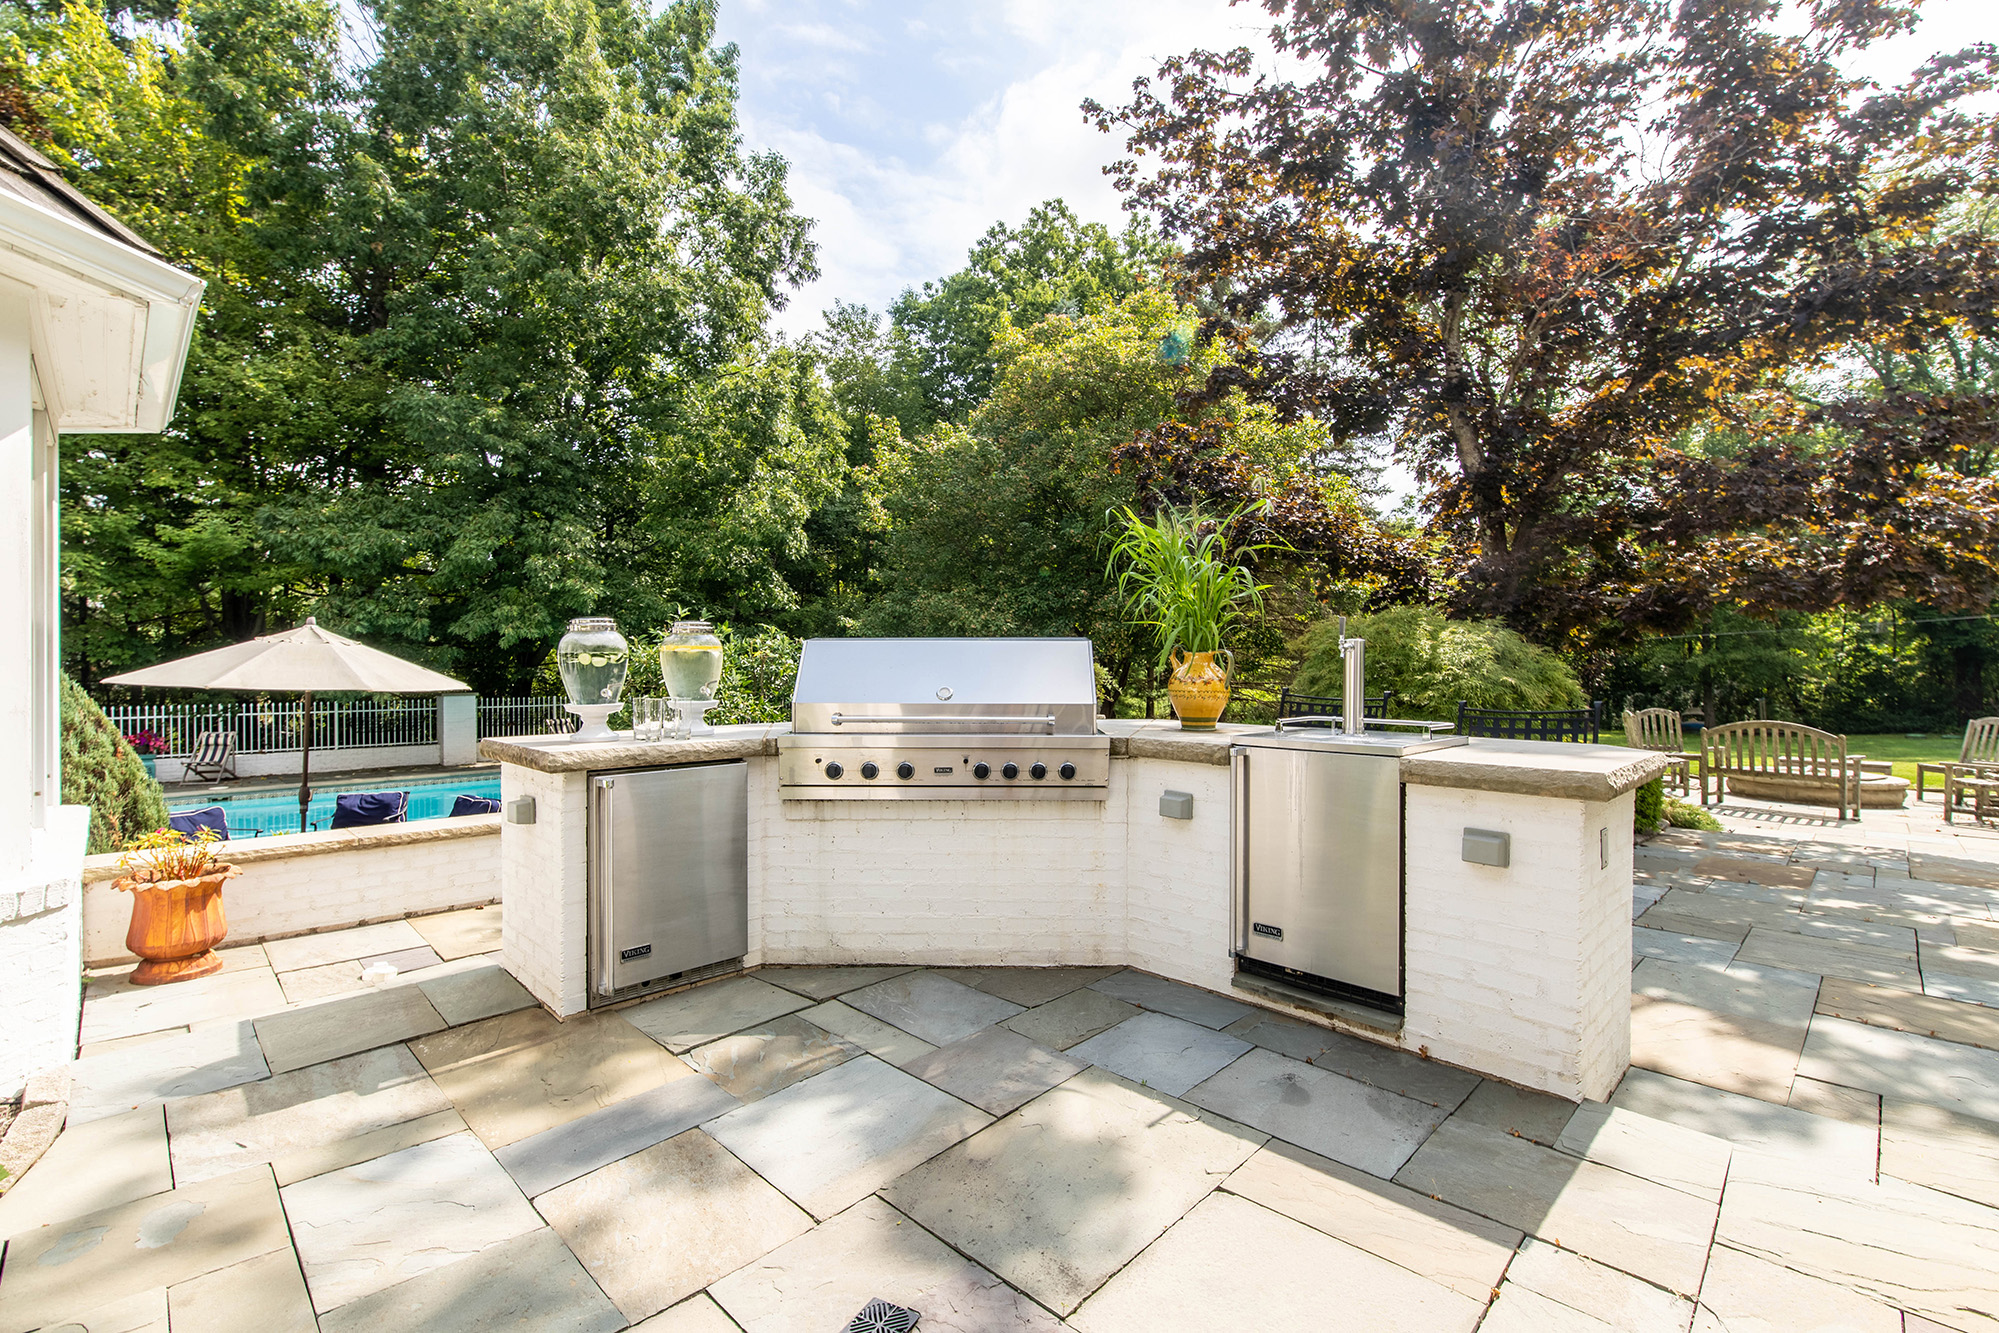 15157 Hemlock outdoor kitchen